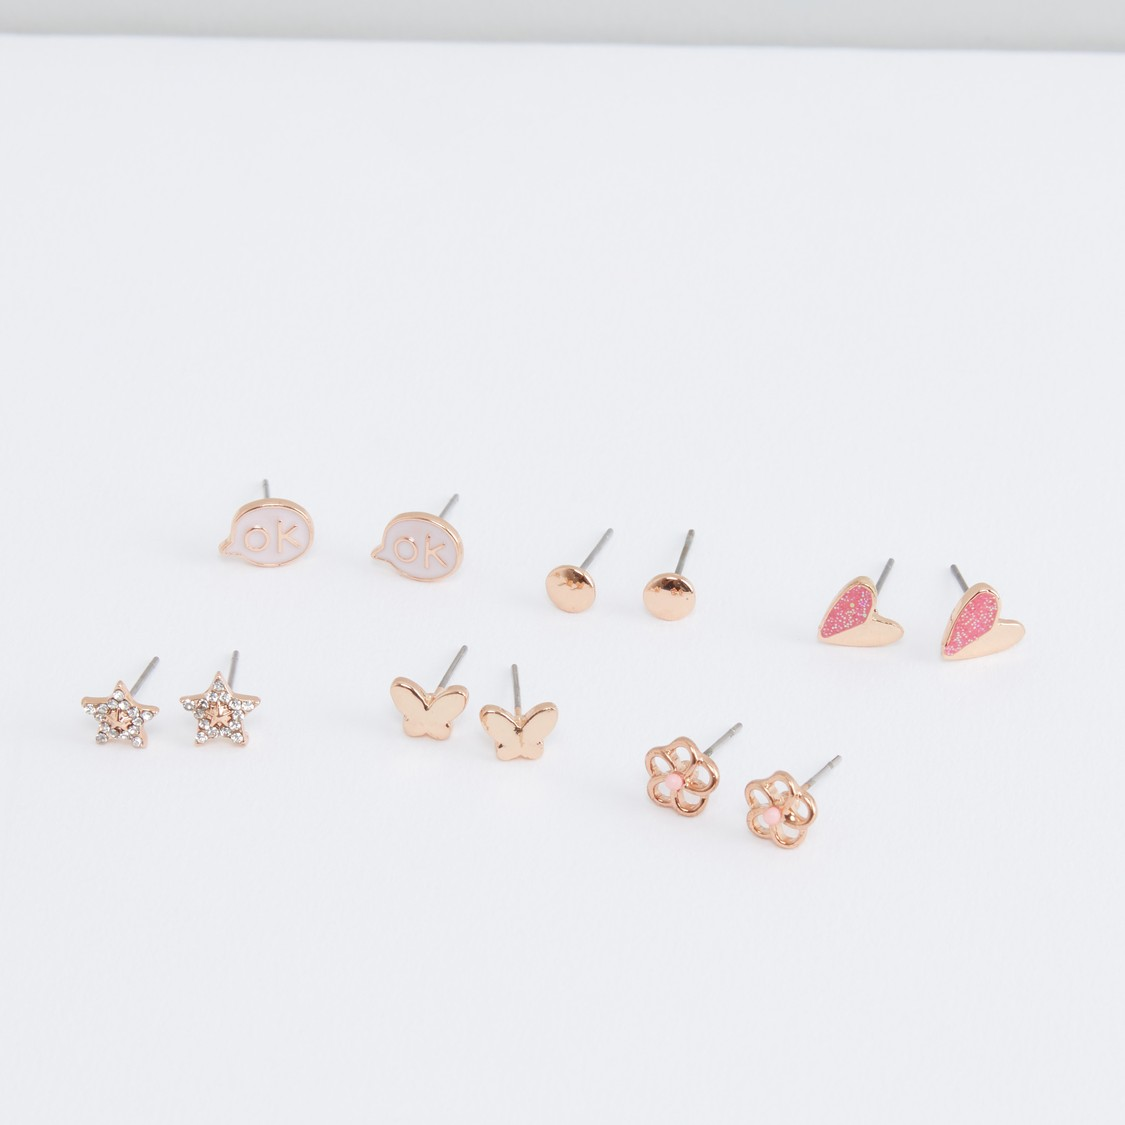 Metallic Earrings with Pushback Closure - Set of 6